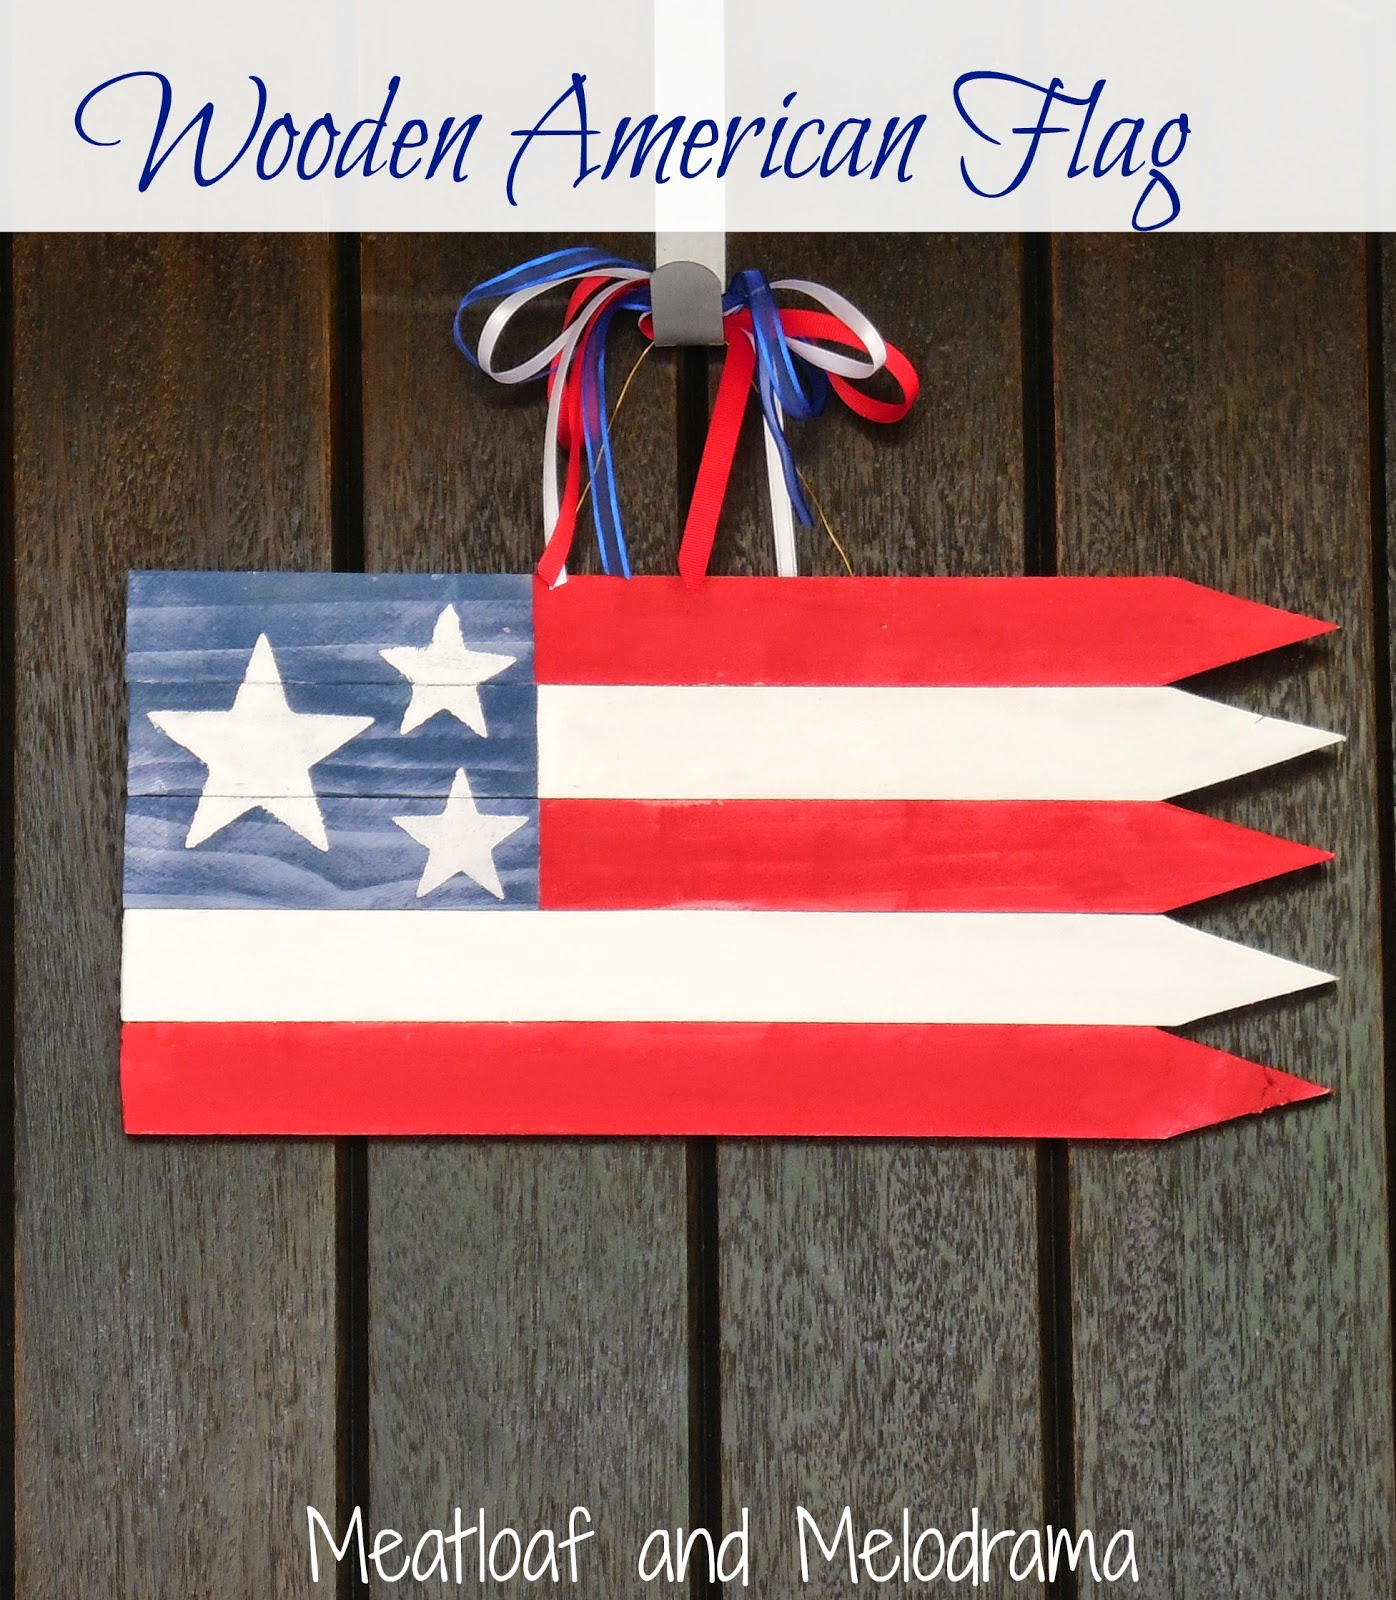 American flag made from wood fence posts